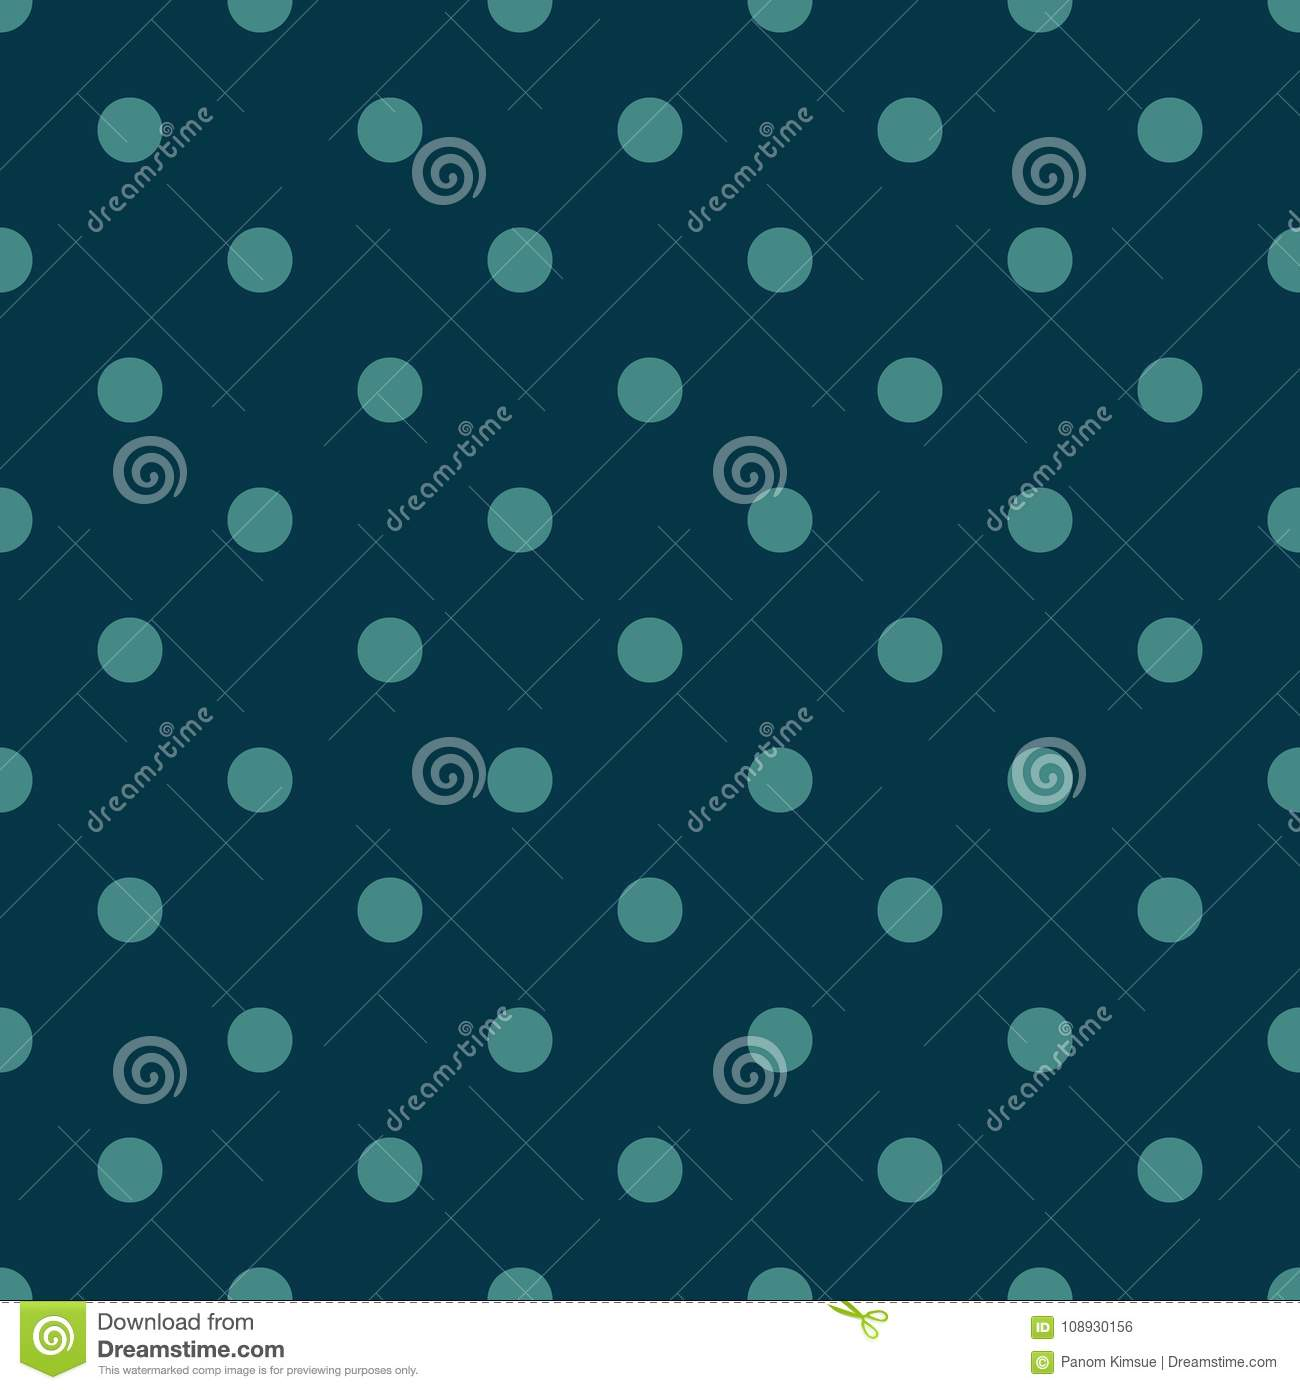 Seamless Pattern Vector With Green Polka Dots On Blue Color Background For Desktop Wallpaper Web Design Cards Invitations Wedd Stock Vector Illustration Of Fabric Color 108930156